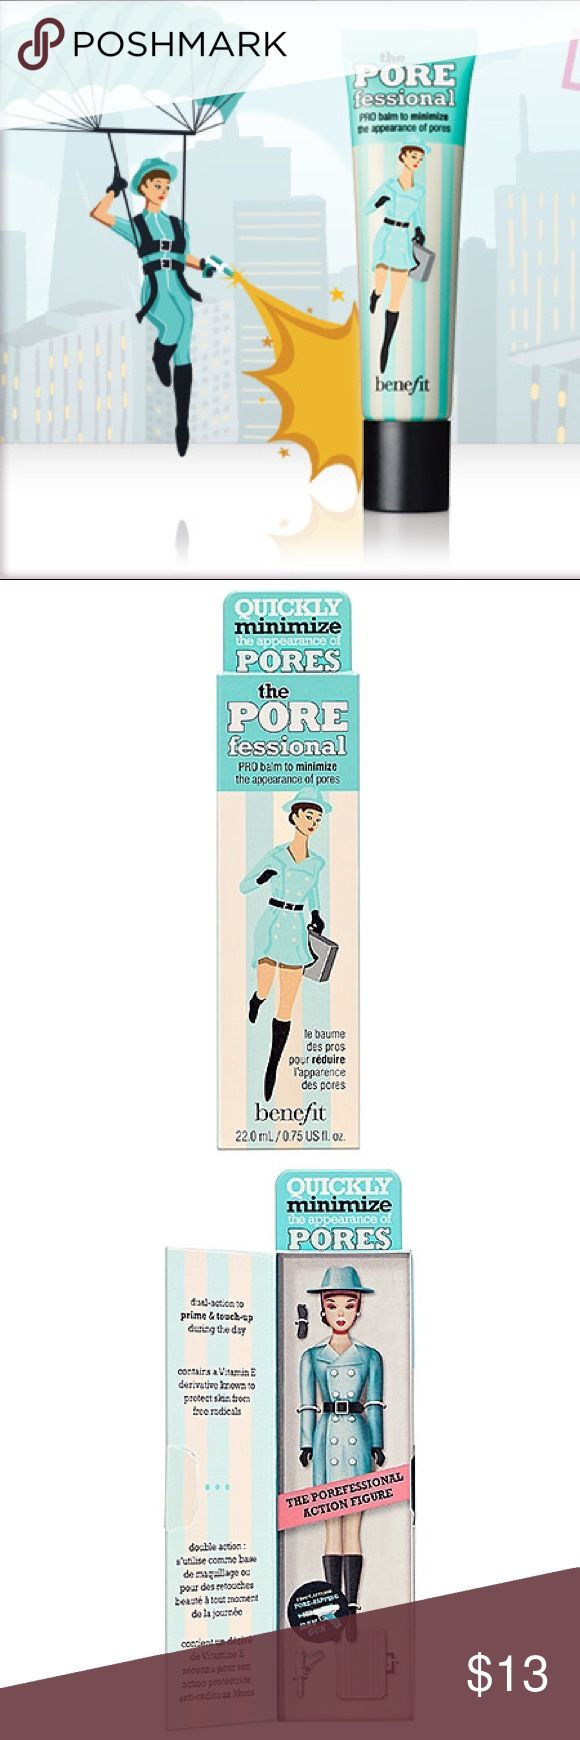 COMING SOON! 🎉🔜🔥The POREFessional Face Primer What it is: An oil-free, professional balm that minimizes the appearance of pores.   What it does: Quickly minimize the appearance of pores & fine lines & help makeup stay put w/ this priming phenomenon. The silky, lightweight formula can be worn under makeup to create a smoother-than-smooth canvas or used throughout the day to mattify shine & touch up problem areas. It's so translucent, no one will know you're wearing anything! Benefit Makeup…